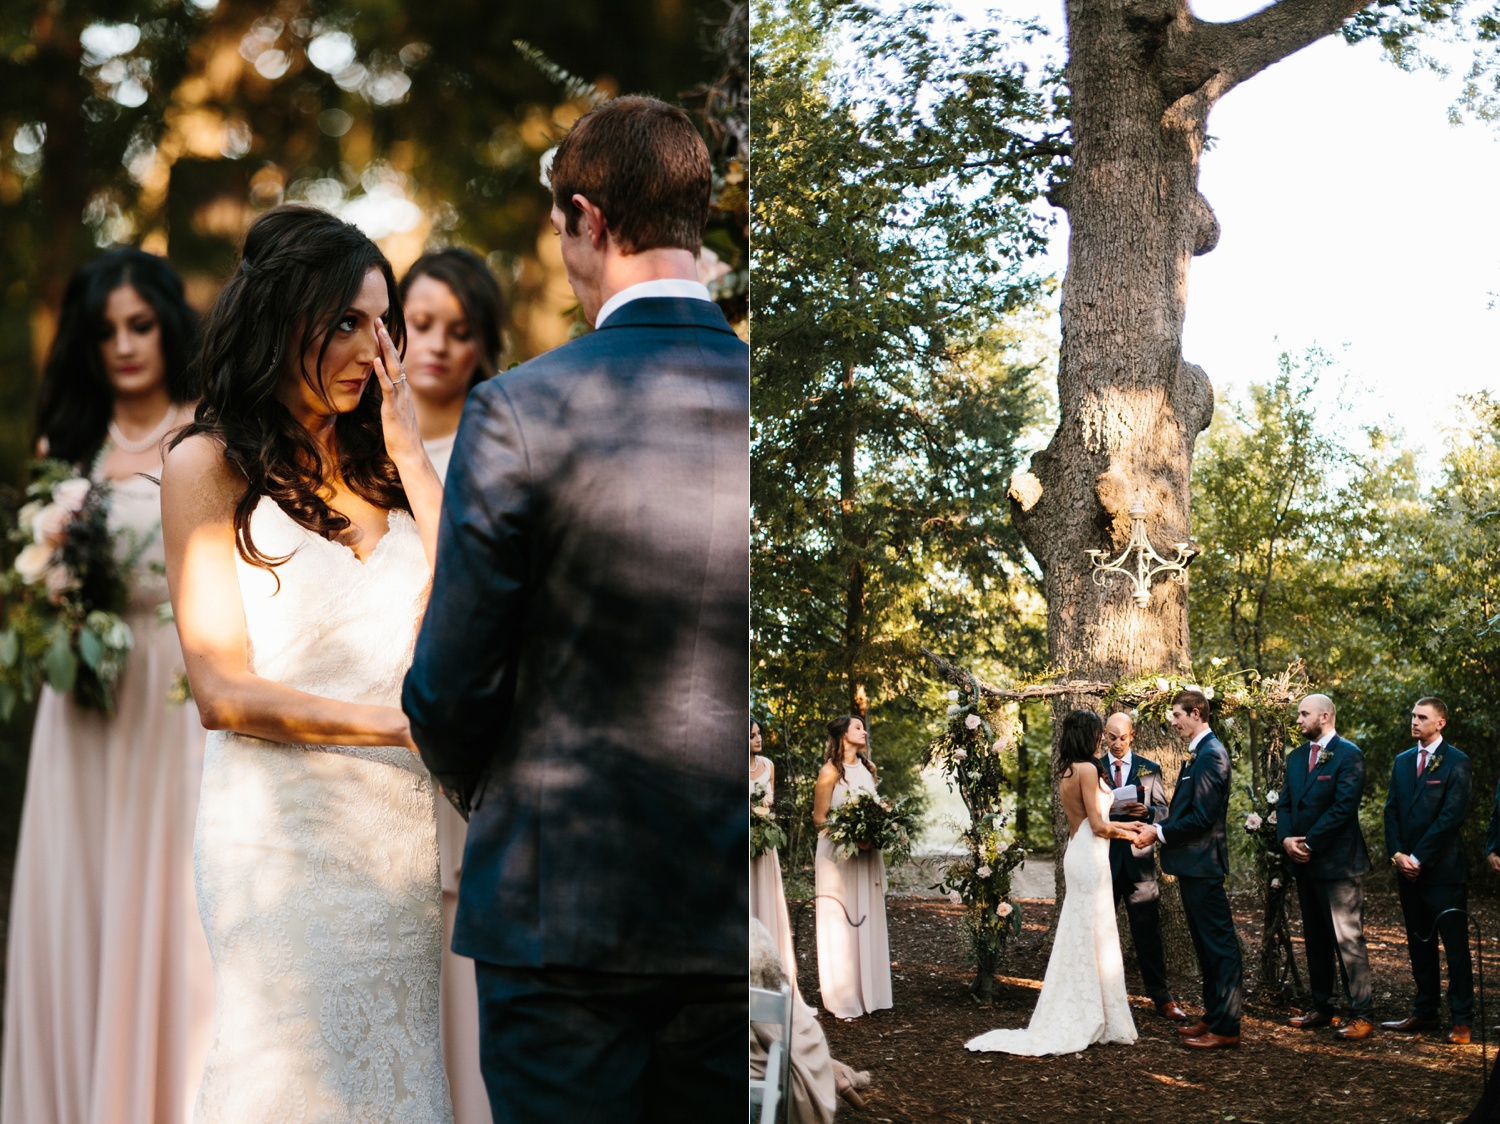 Erica + Henry | a bohemian inspired wedding at Chandlers Gardens in Salina, TX by North Texas Wedding Photographer Rachel Meagan Photography 073